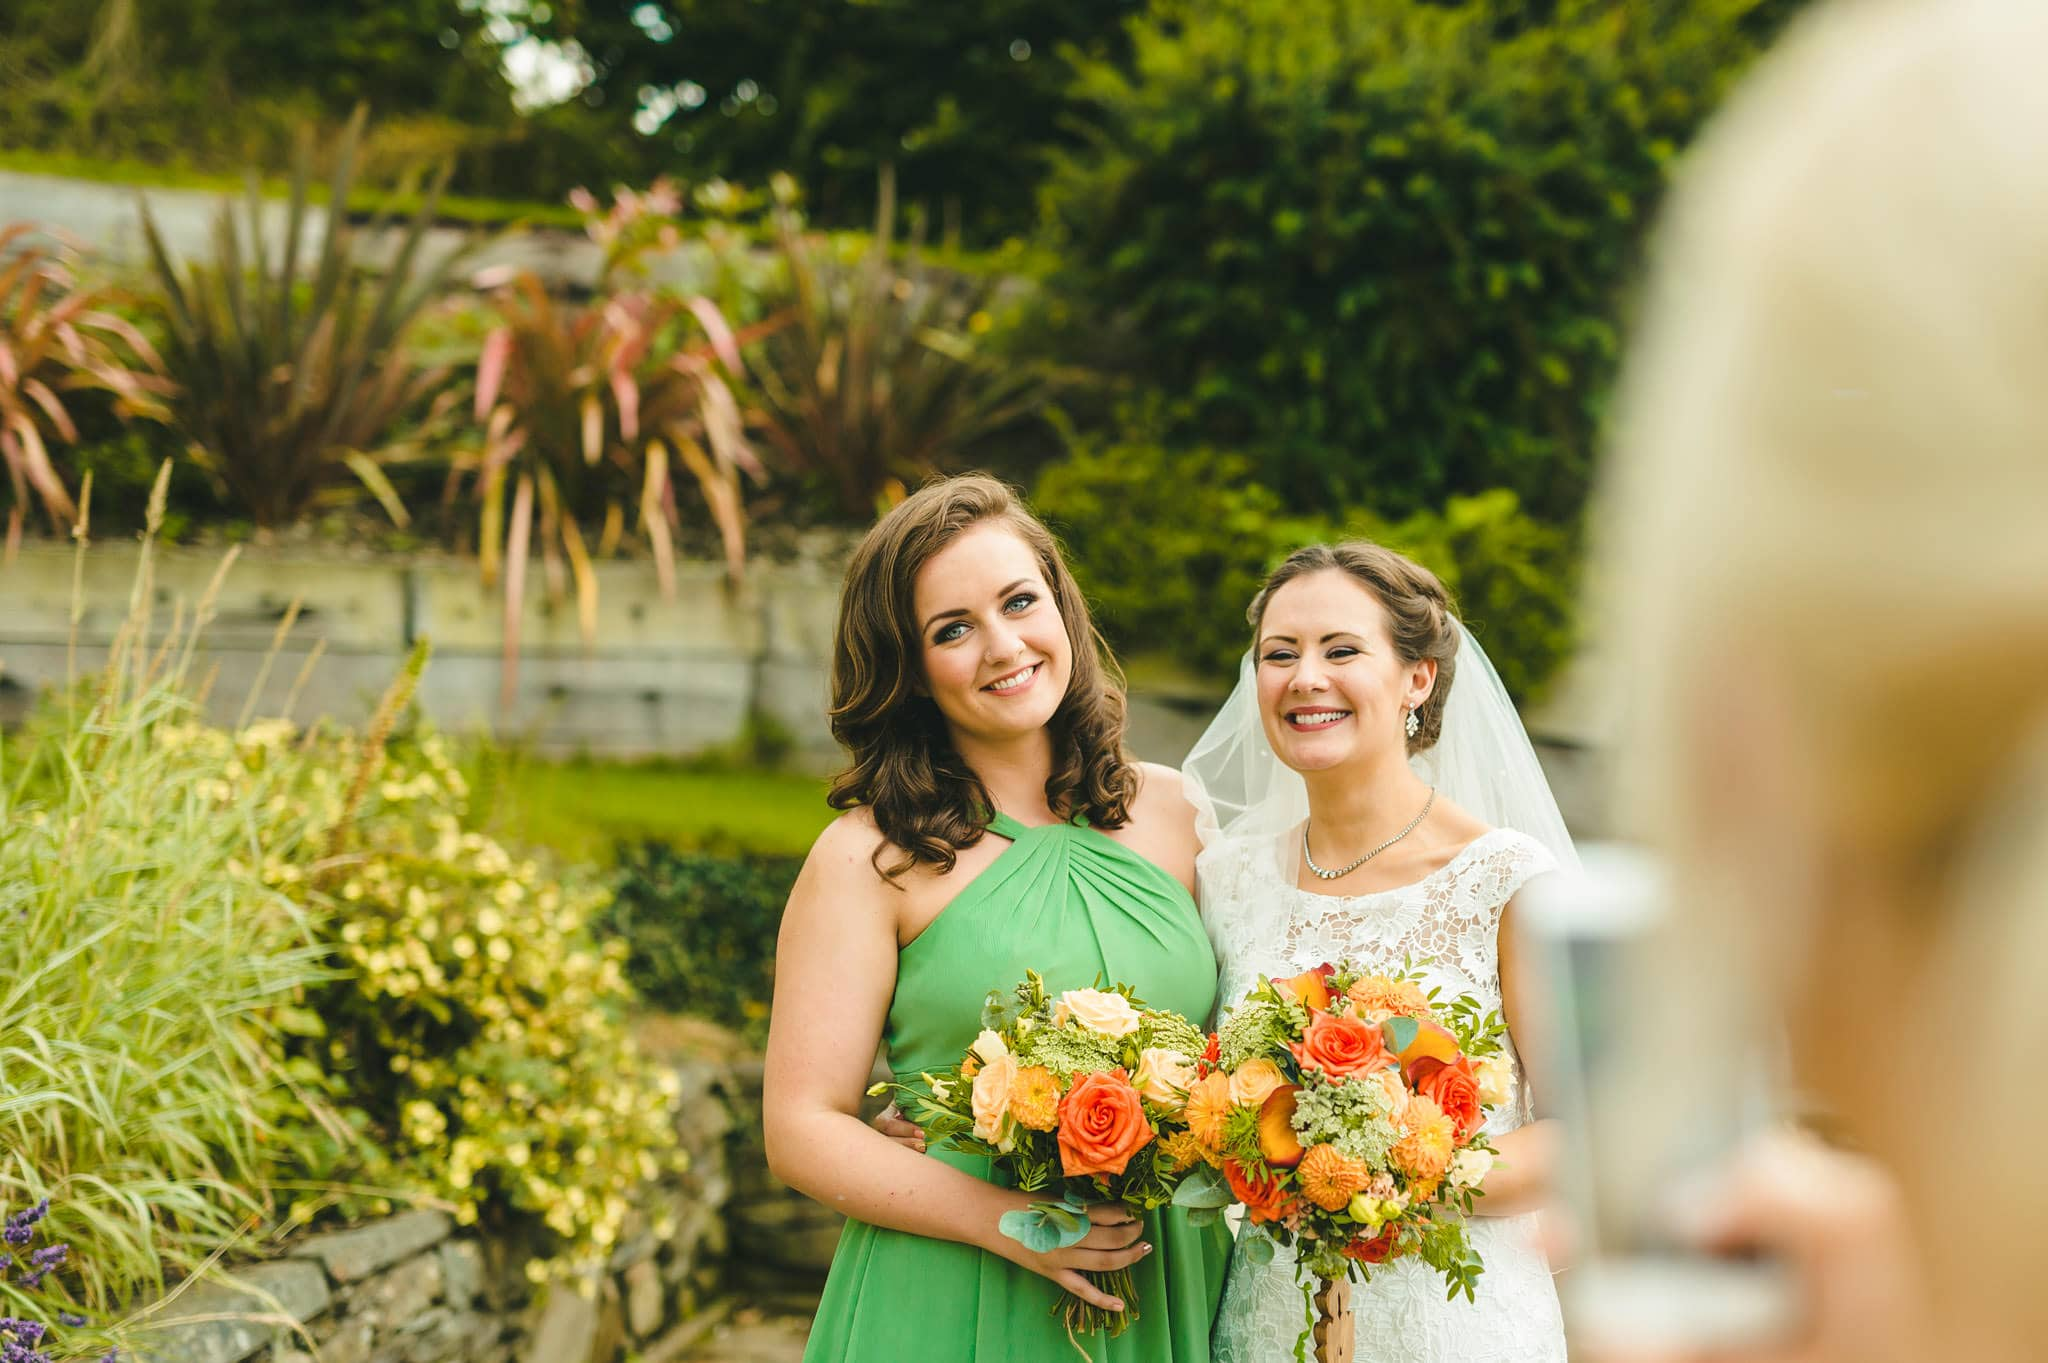 Wedding photography at Y Talbot Hotel in Tregaron, Wales | Tina + Phil 58